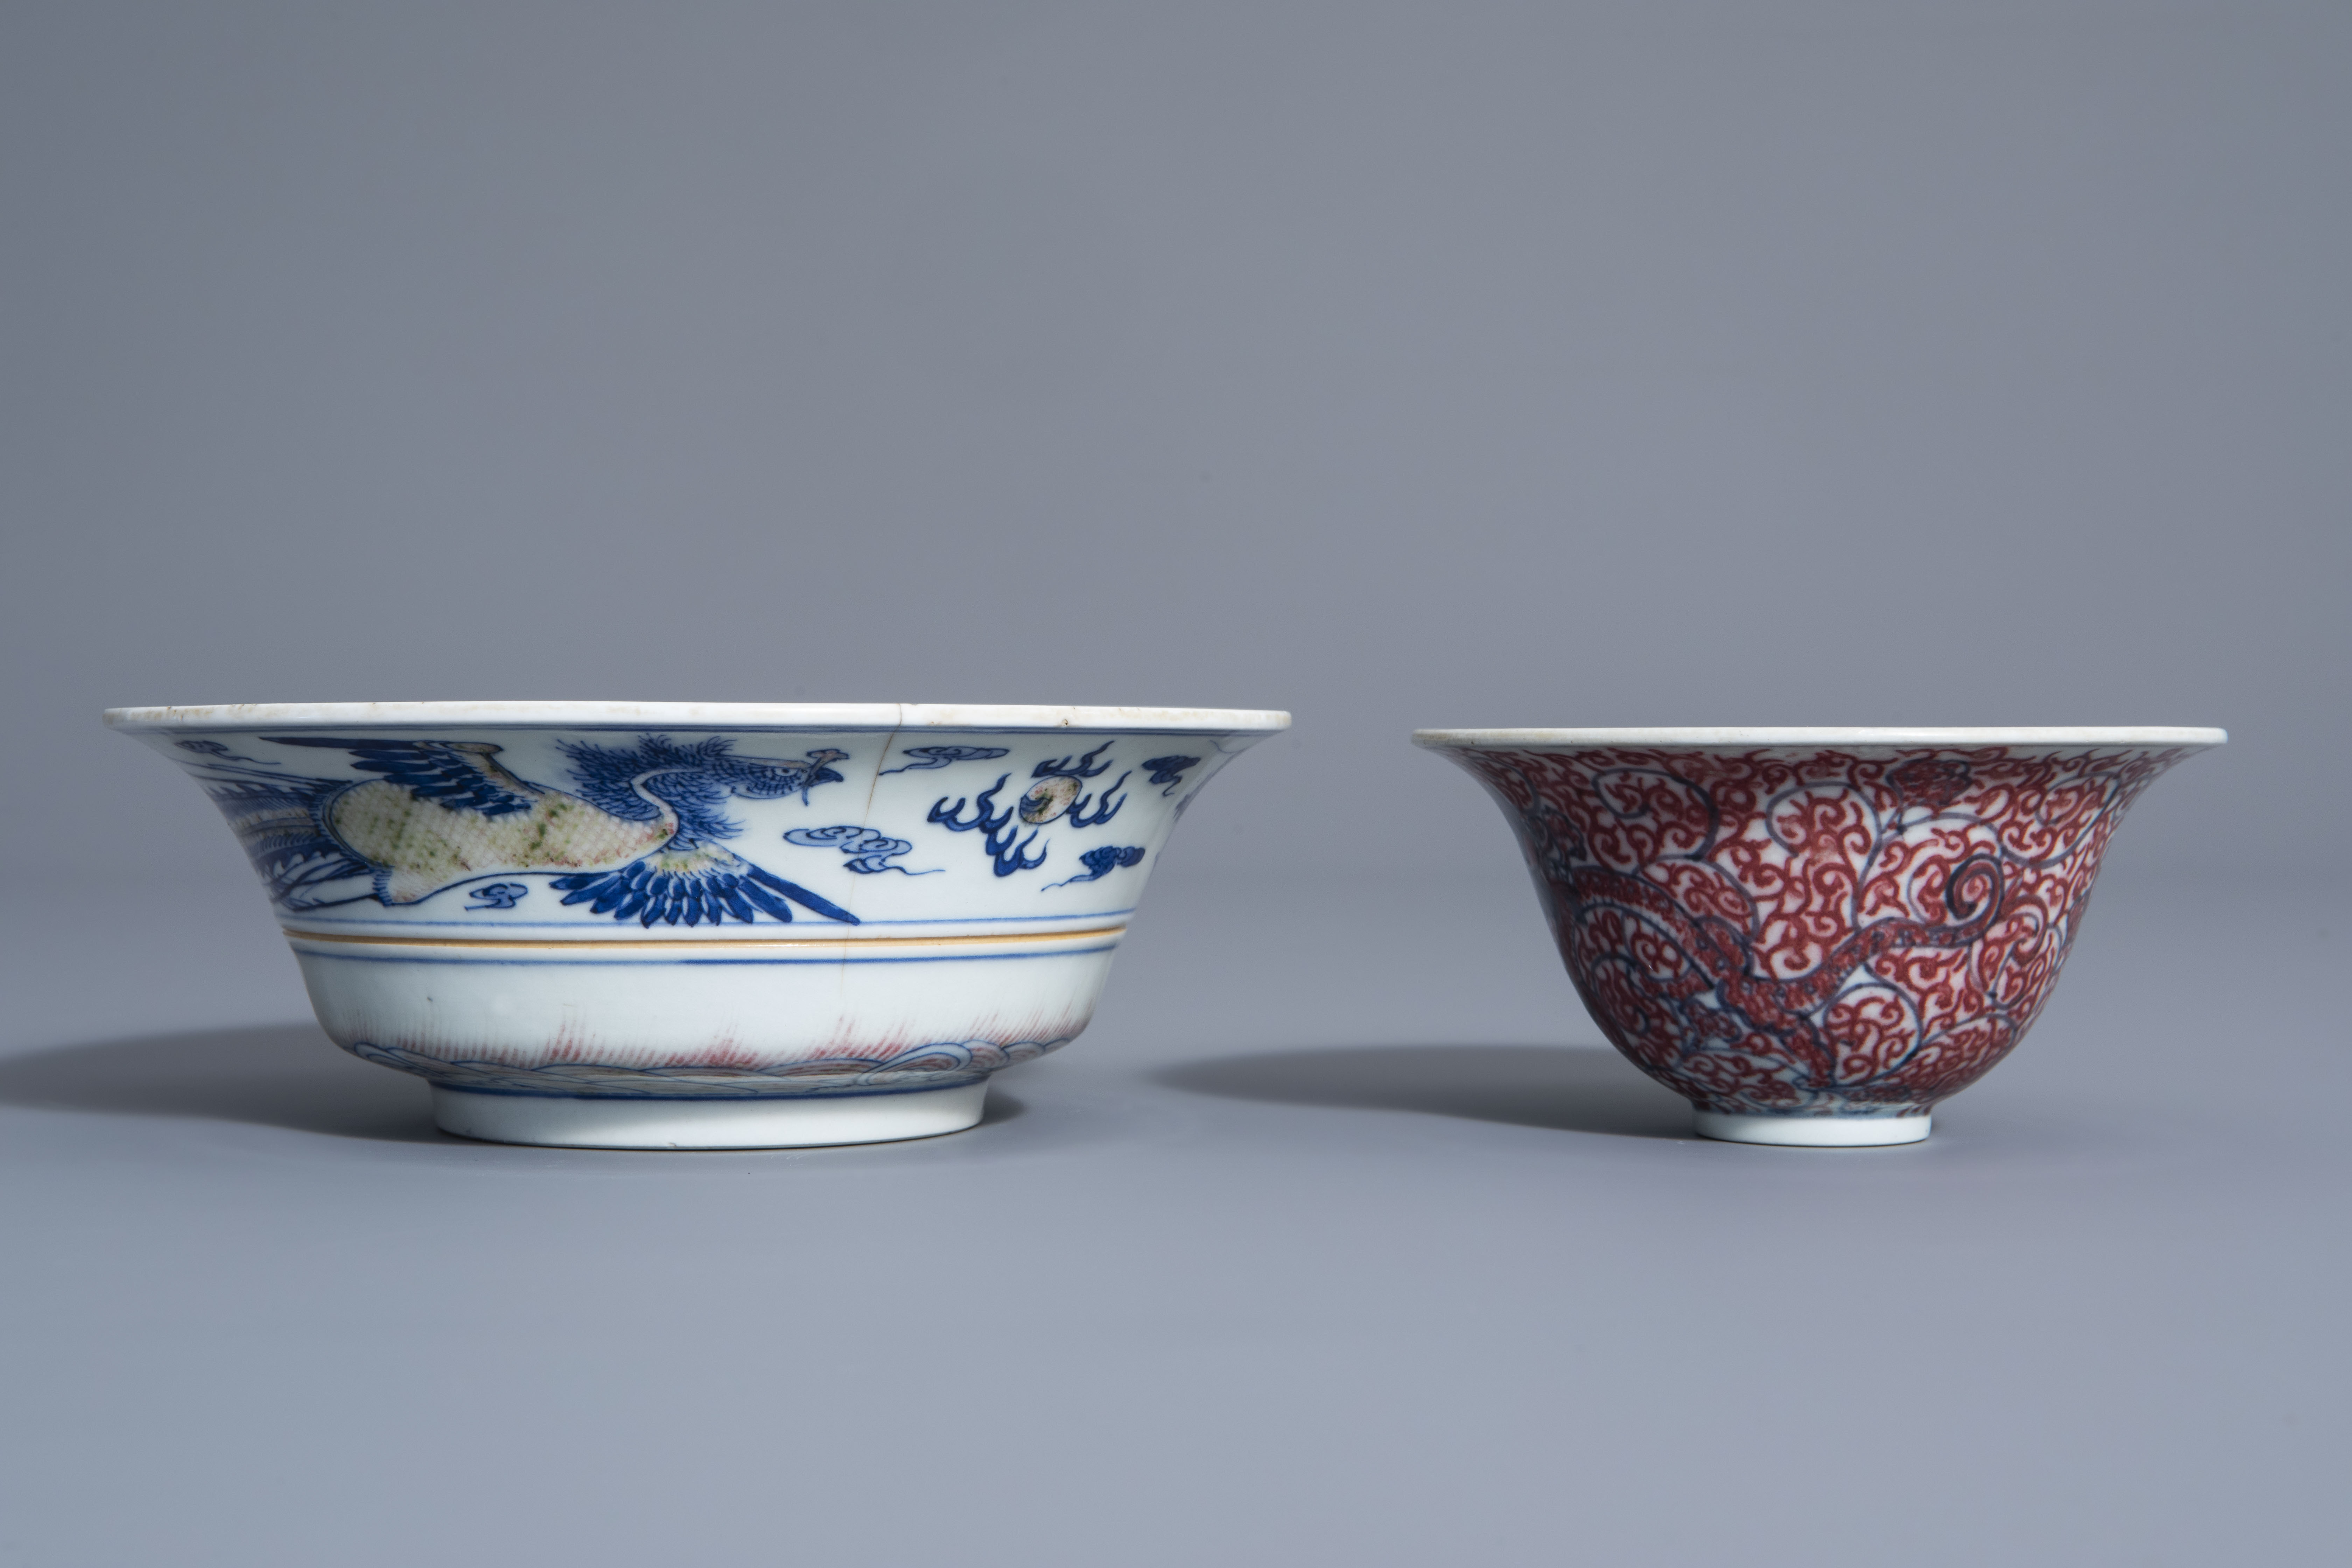 Two Chinese blue, white and copper red bowls, Kangxi mark, 19th/20th C. - Image 3 of 7